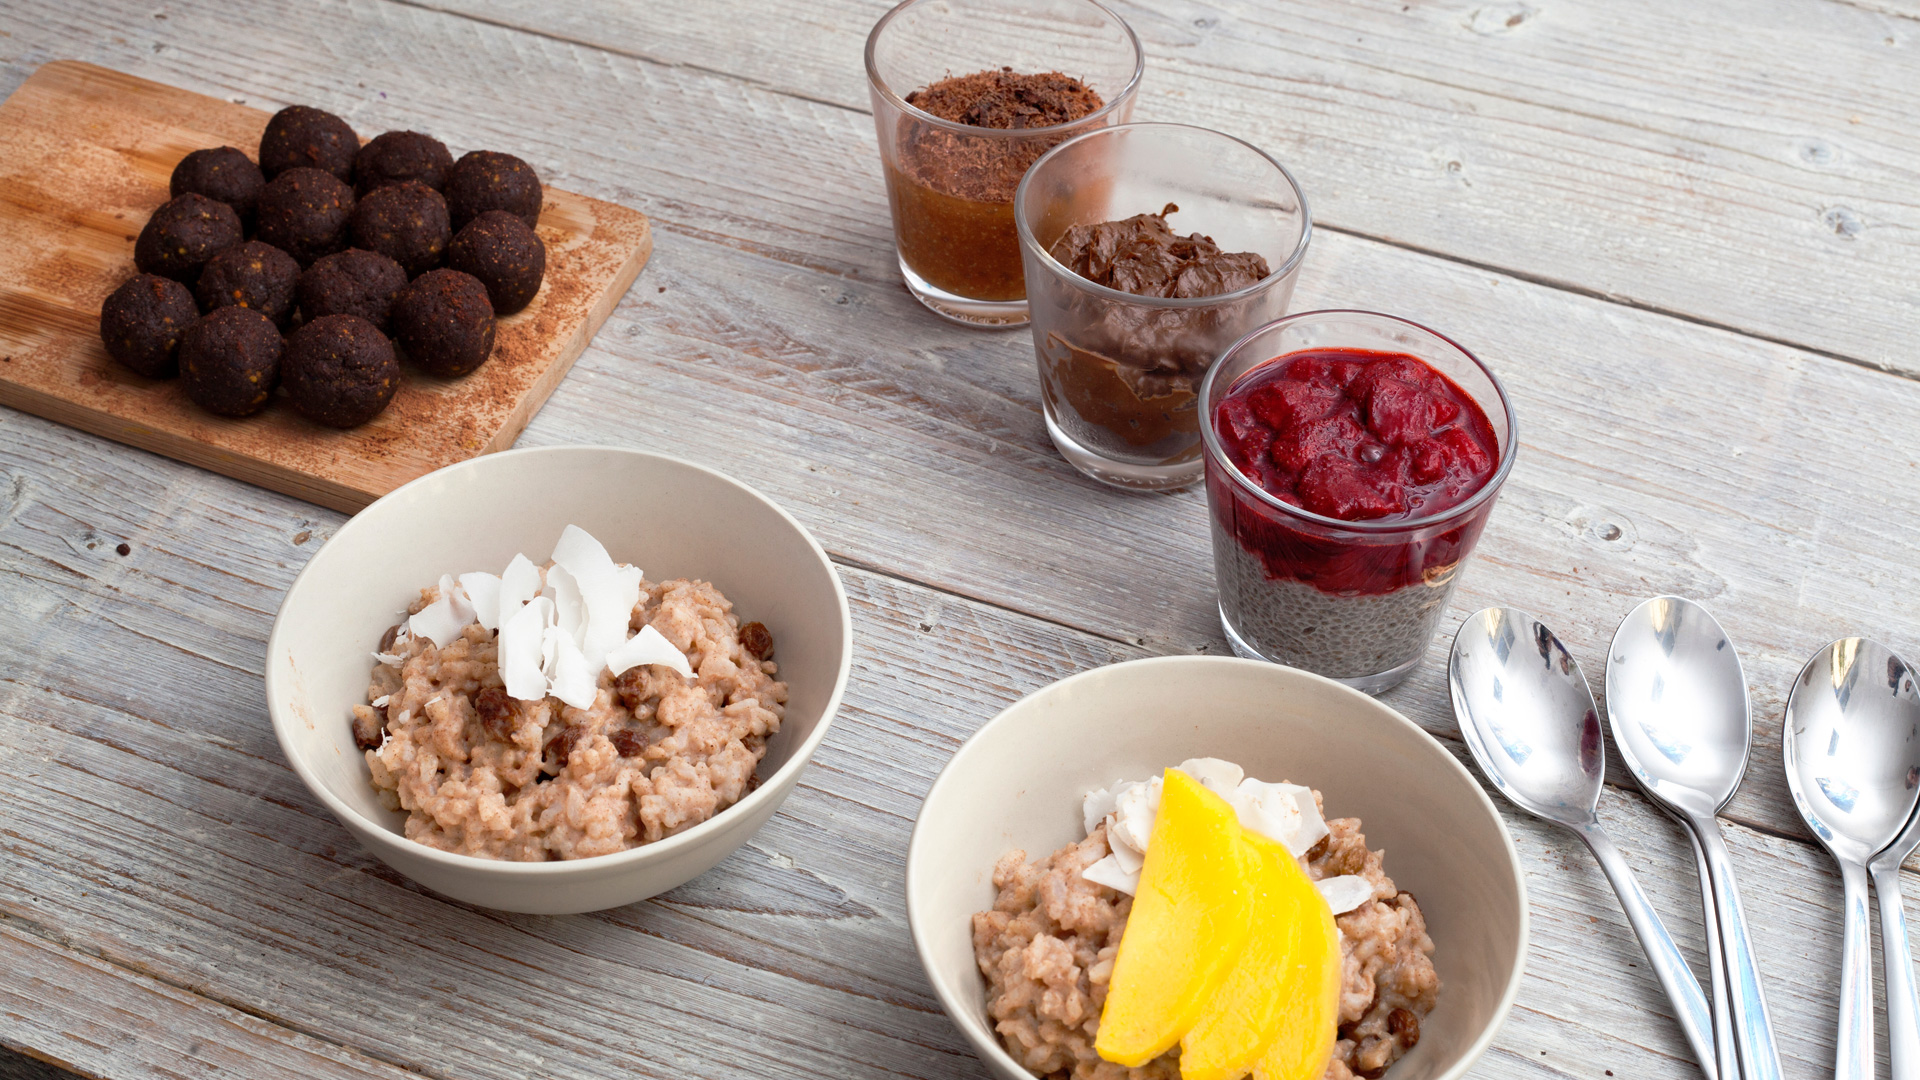 Linsey Boersbroek created a selection of delicious and healthy desserts and snacks for Foodadit.